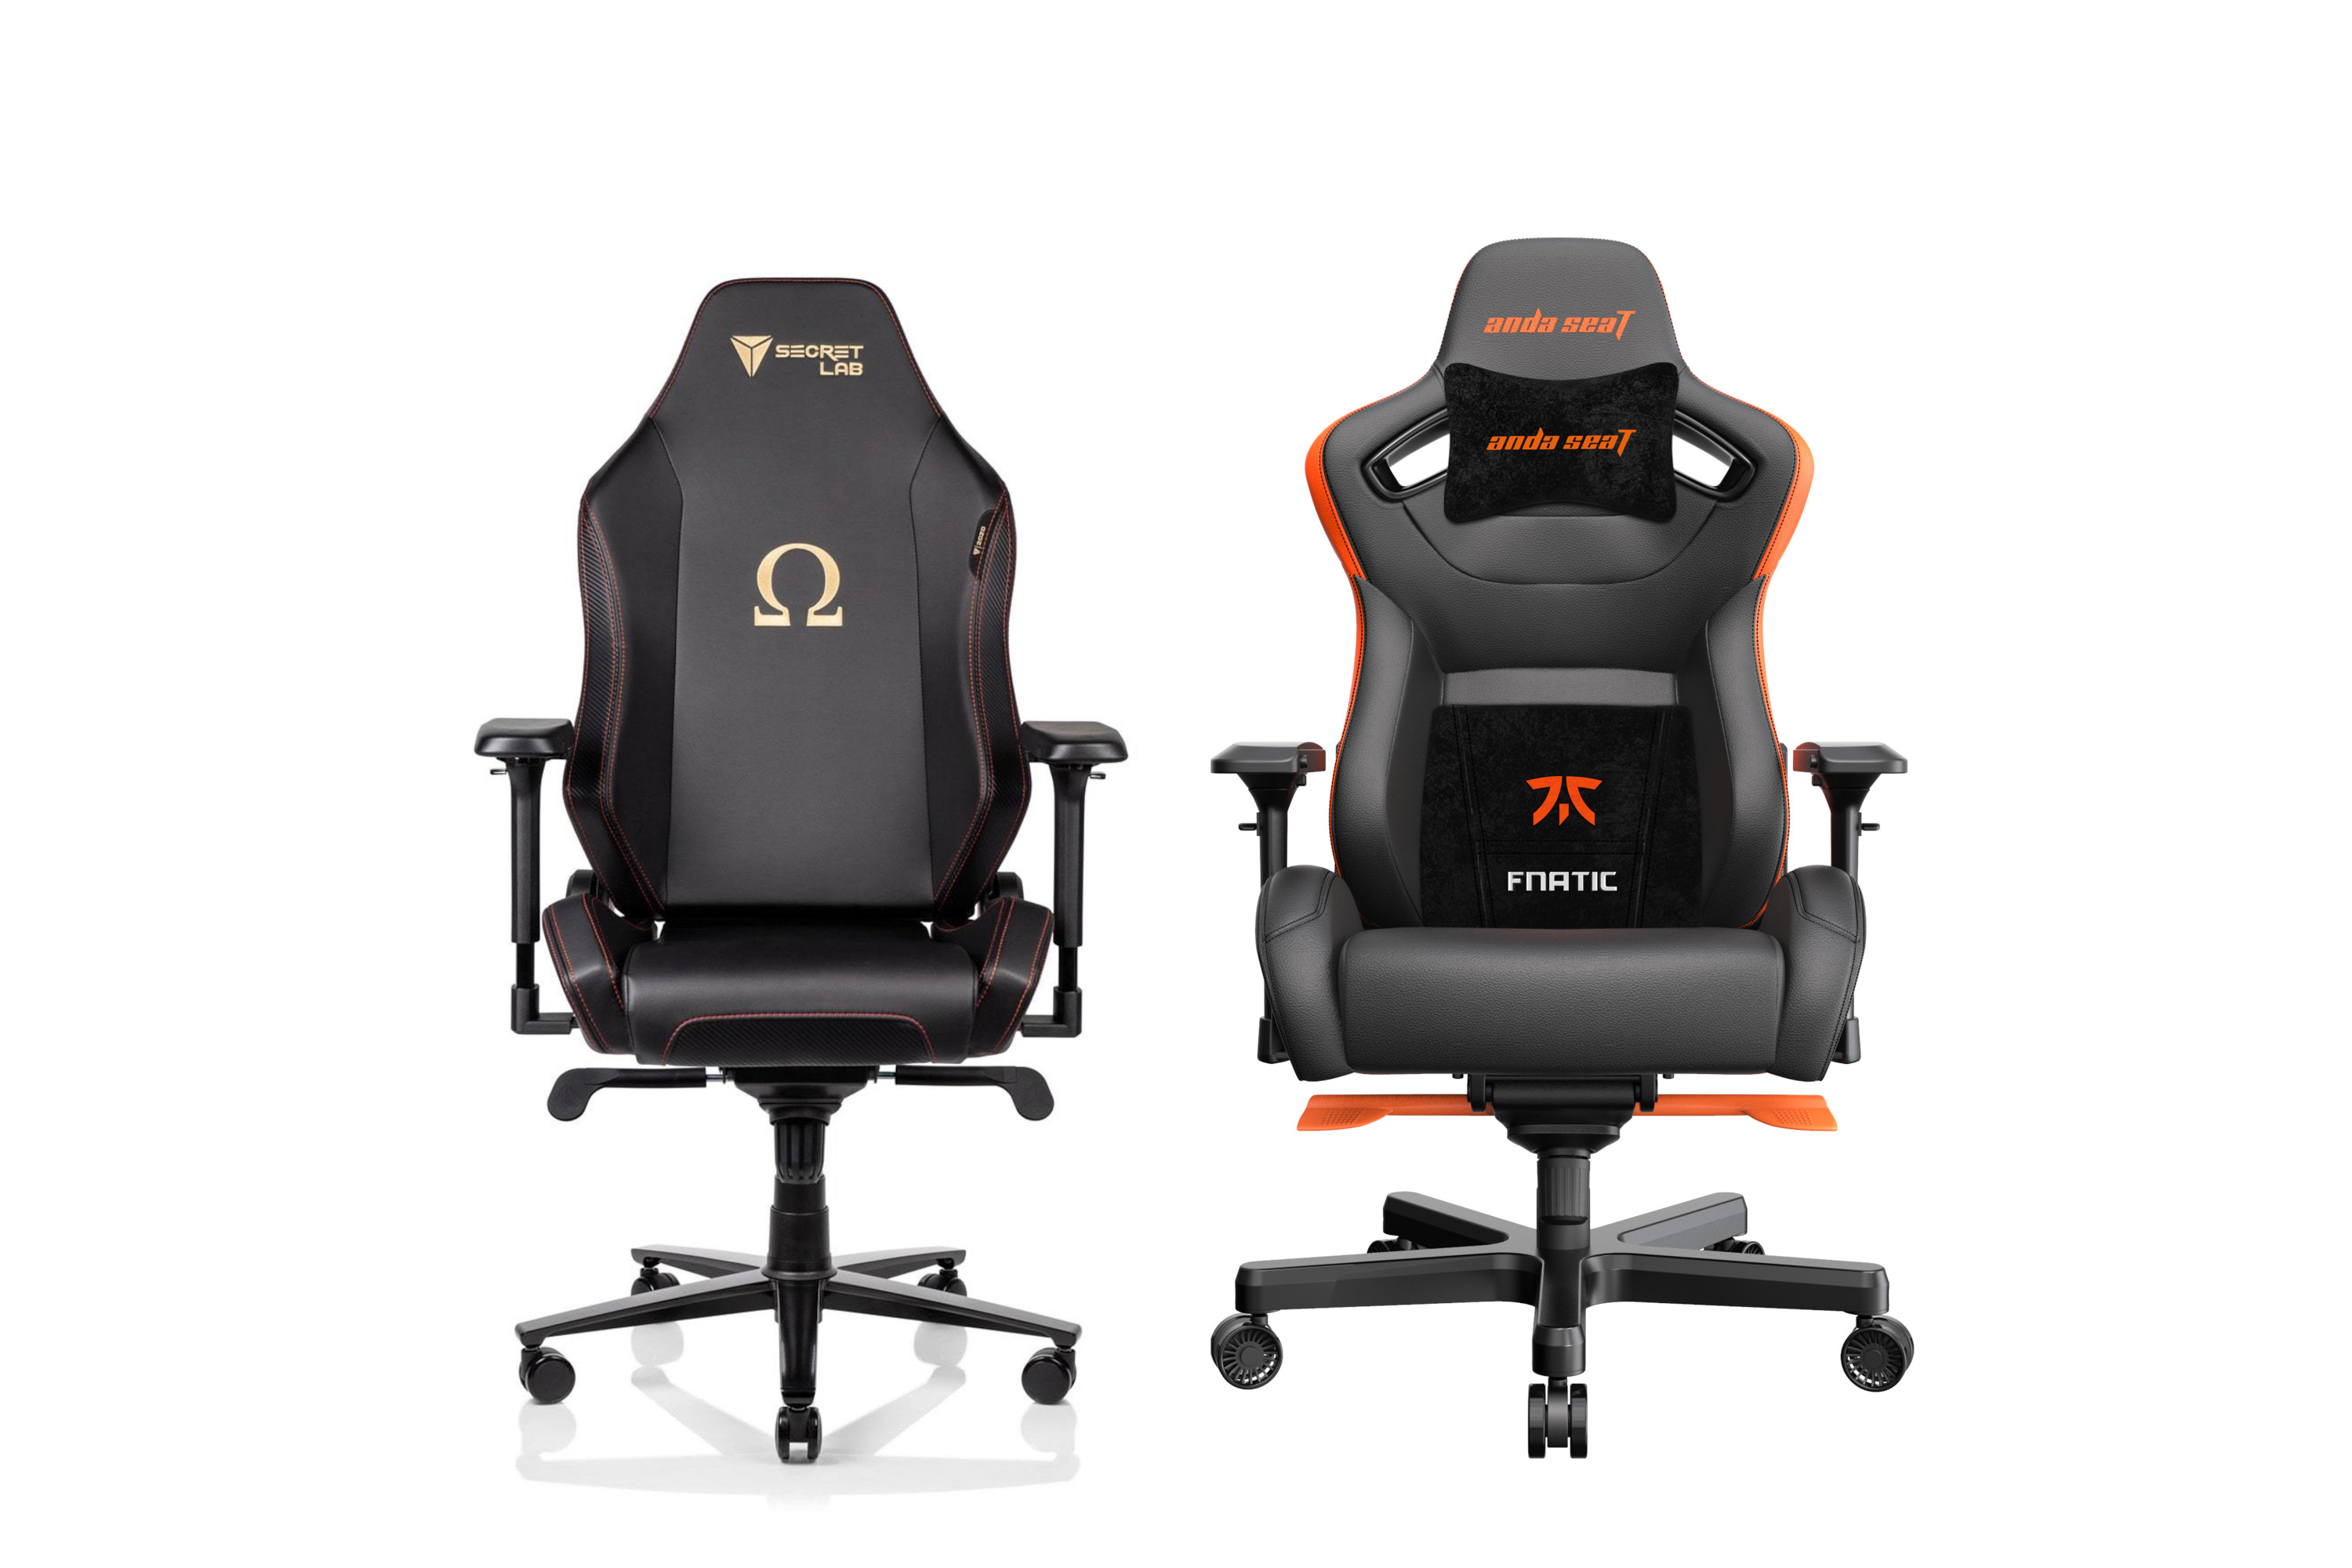 Picture of: Gaming Chairs Or Work From Home Chairs Ars Tests Two Under 500 Ars Technica